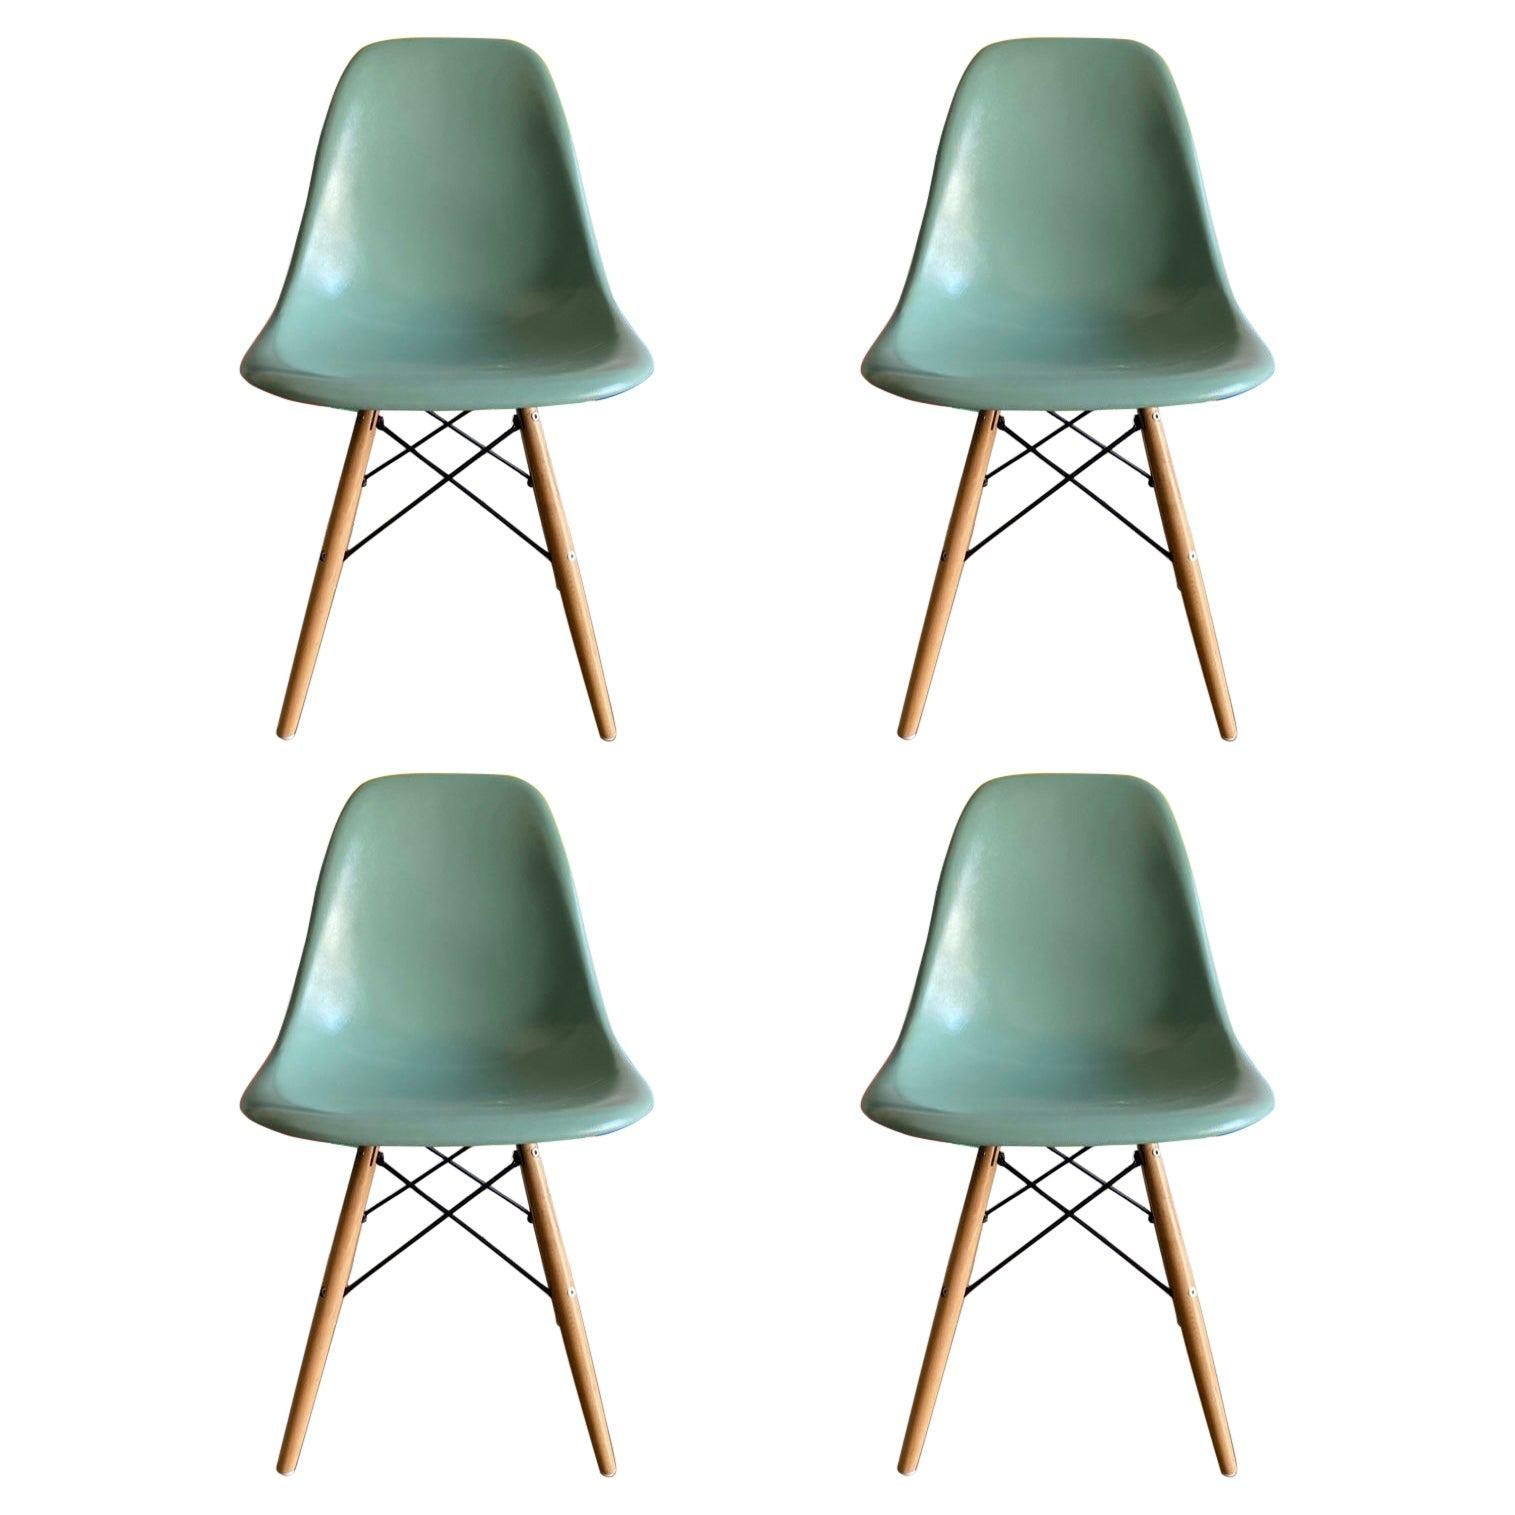 Herman Miller Eames Dining Chairs in Seafoam Green